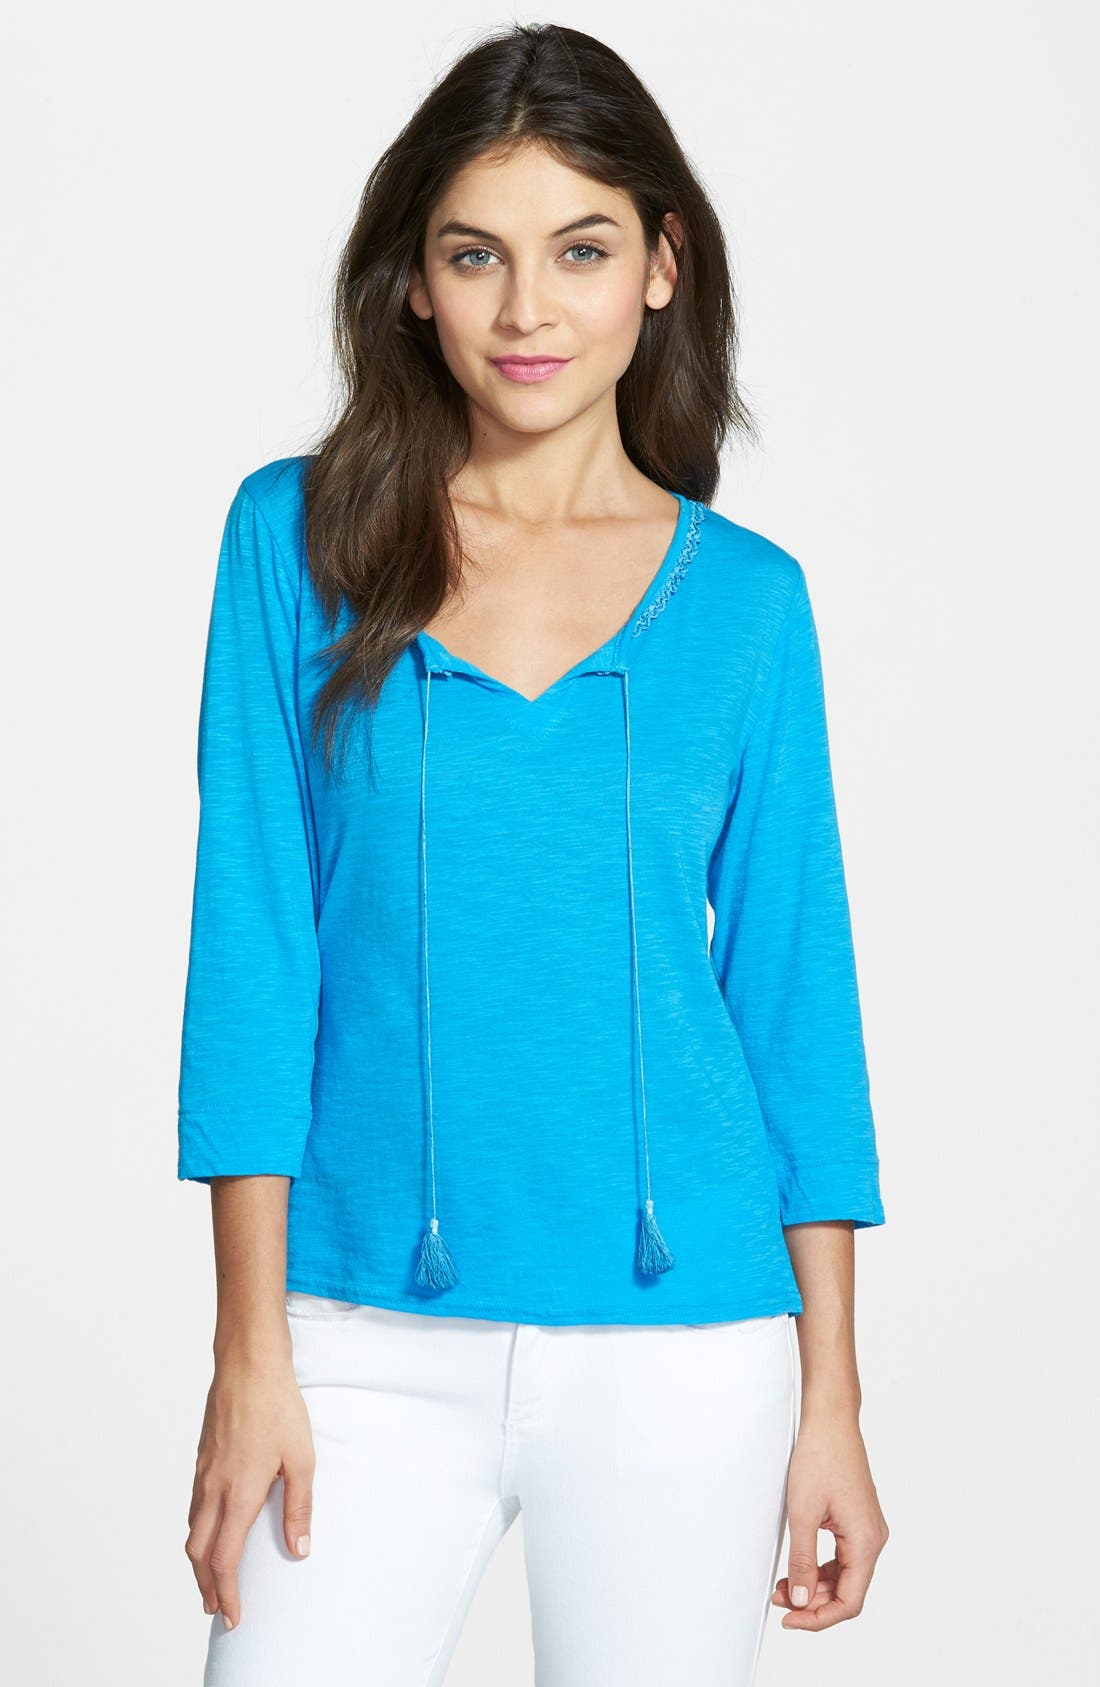 Alternate Image 1 Selected - Two by Vince Camuto Slub Jersey Tie Front Top